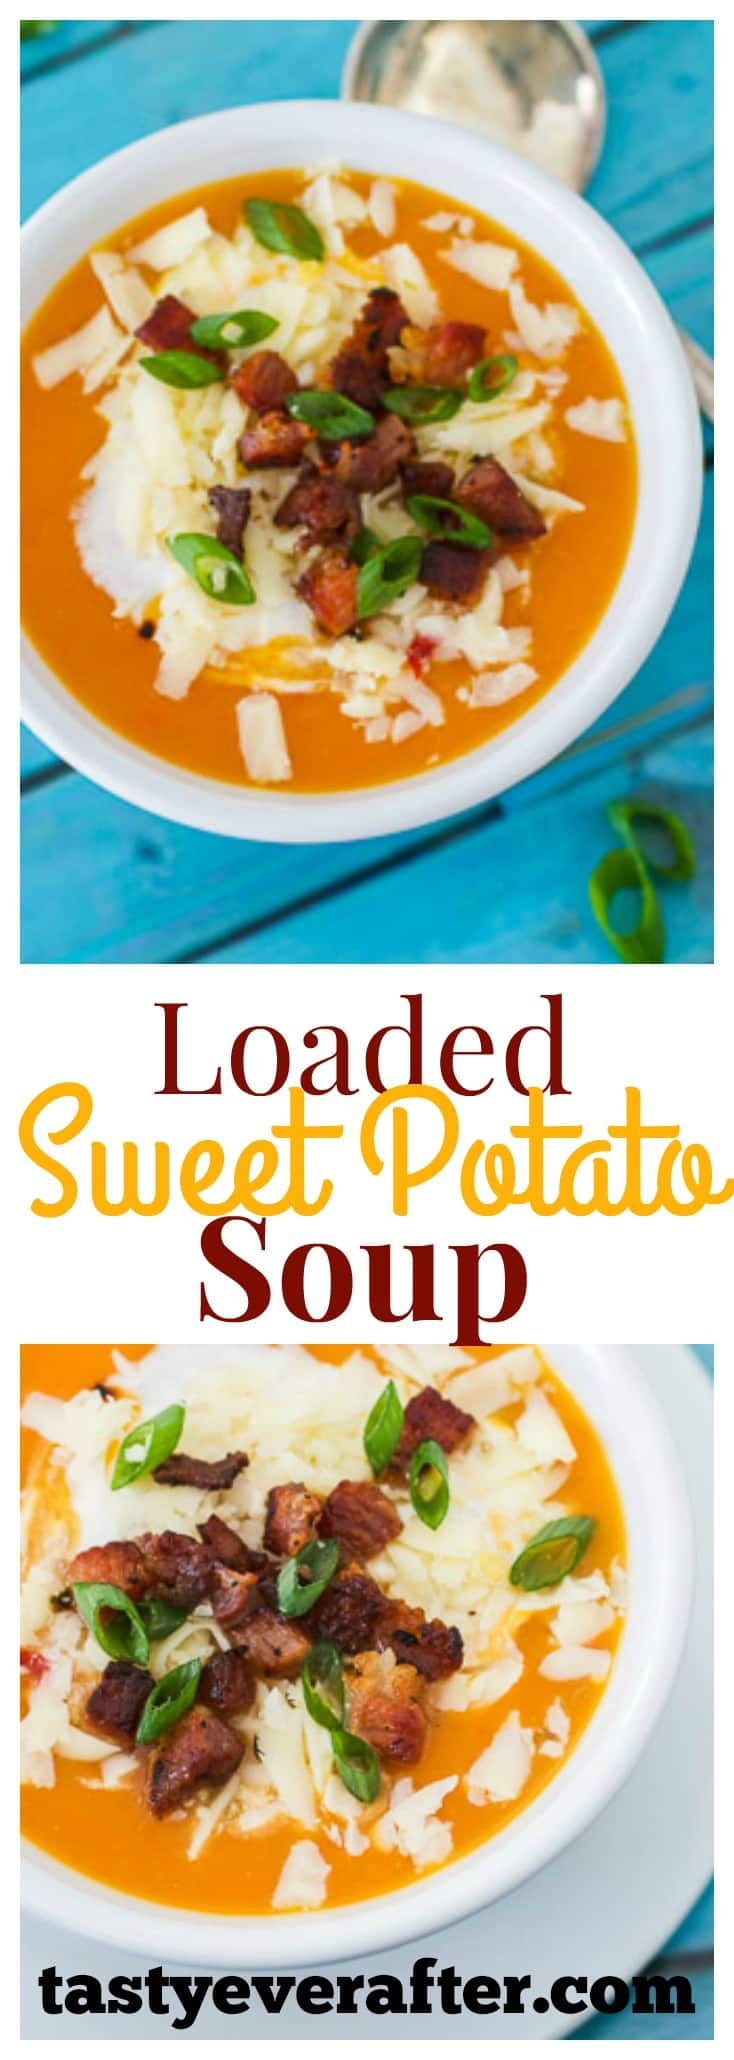 Loaded Sweet Potato Soup